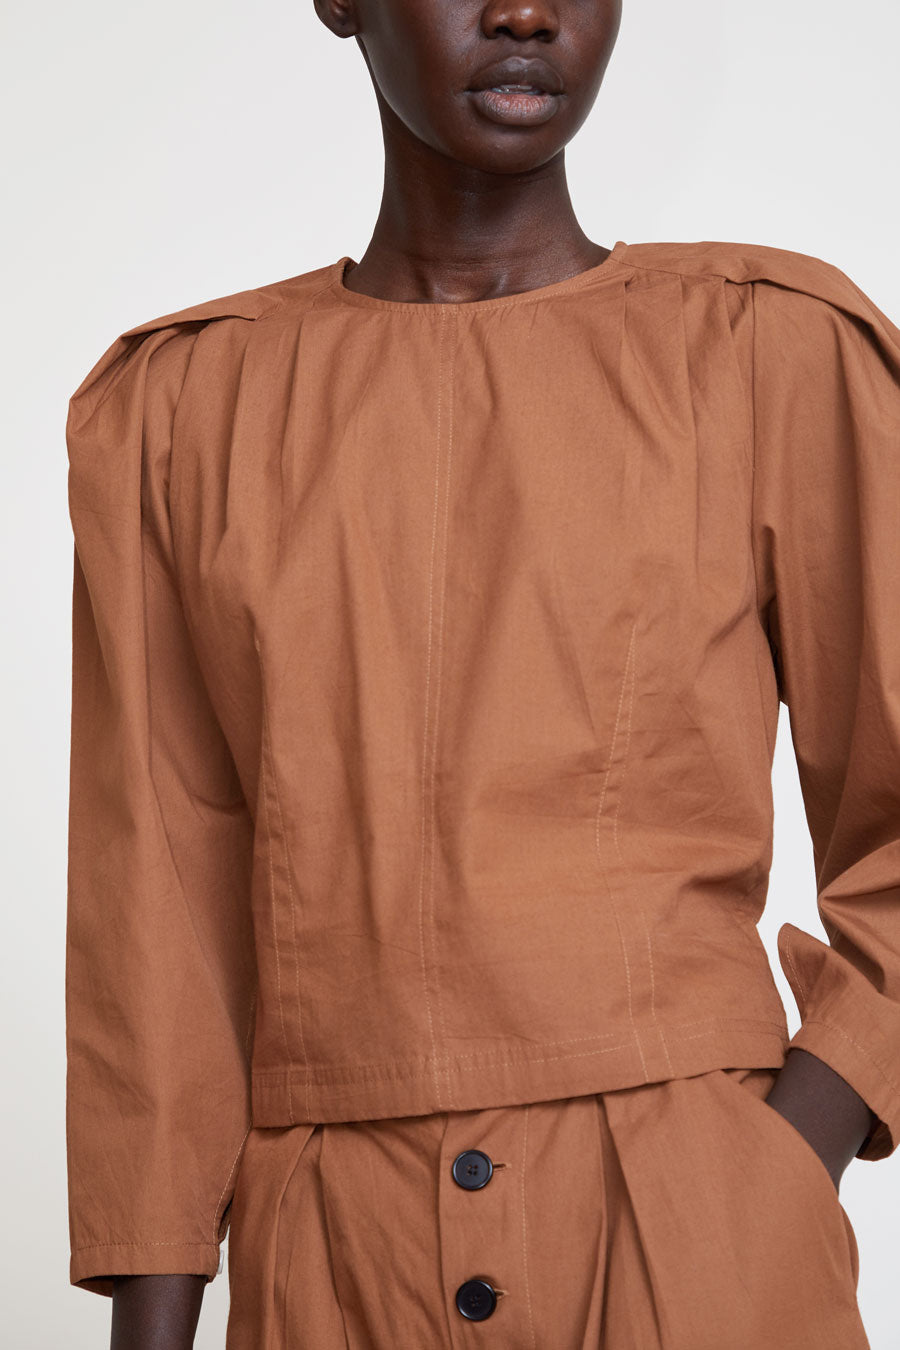 Polder Ayumi Top in Toffee